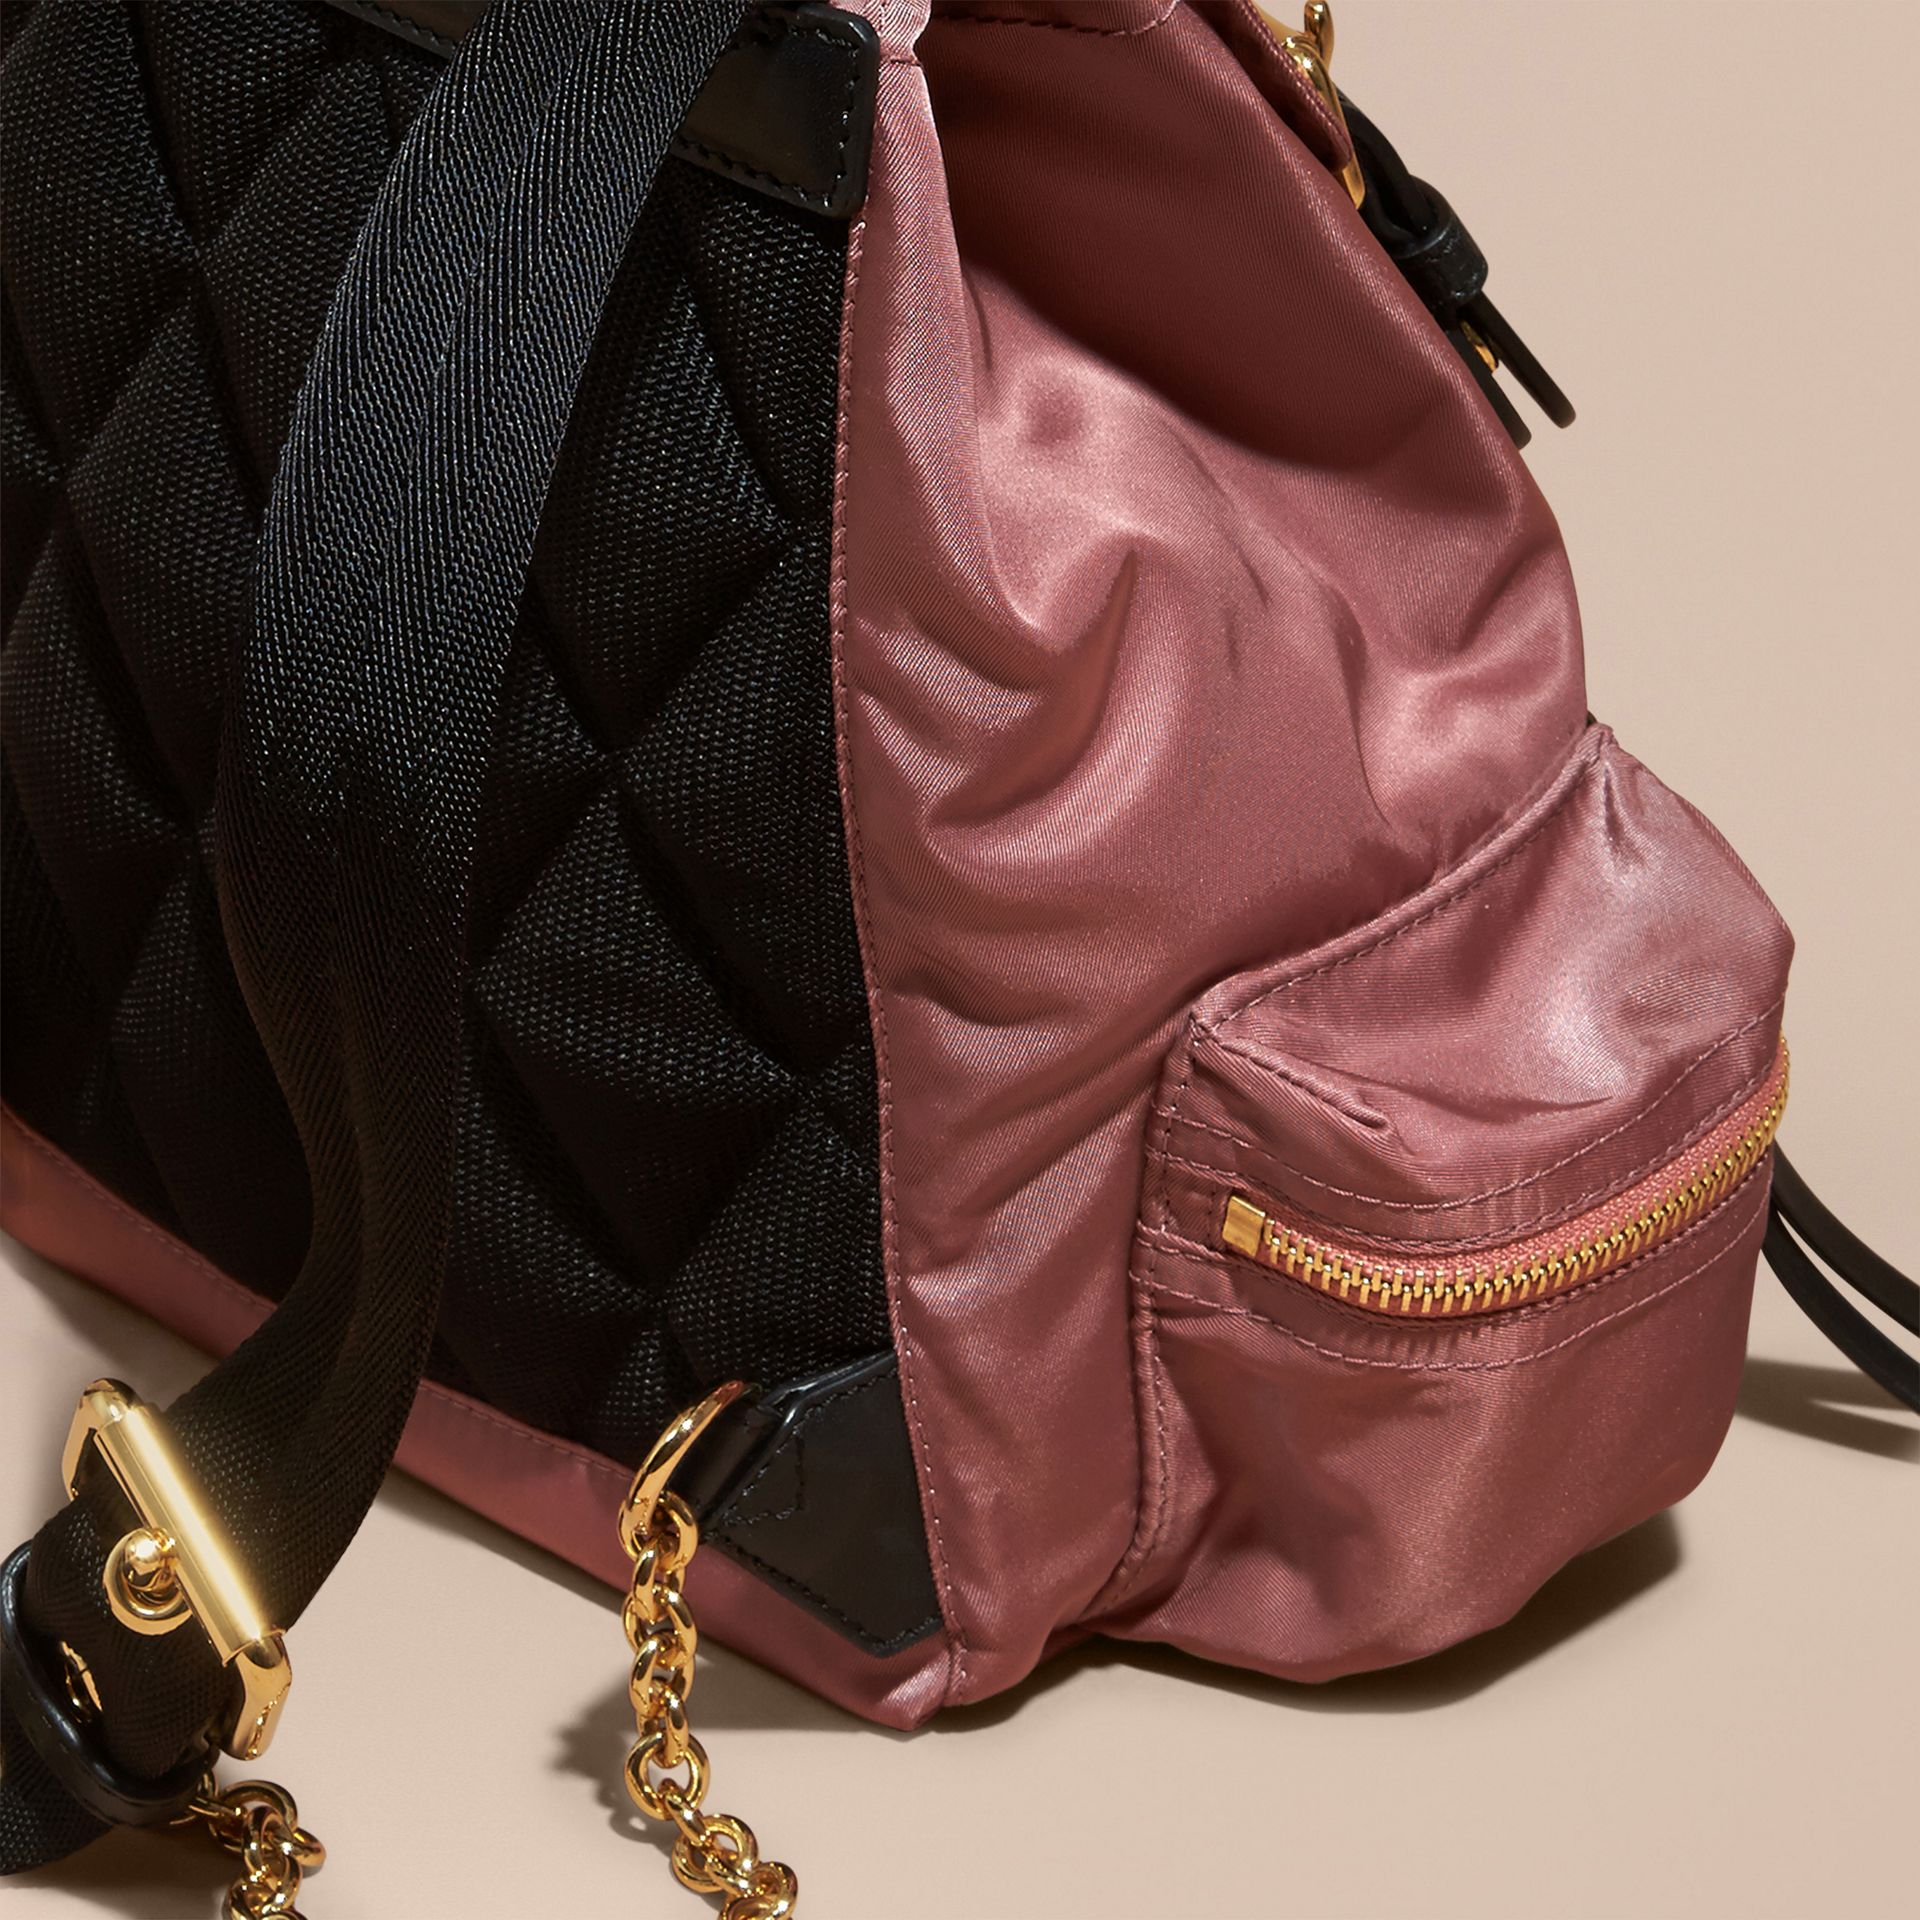 Mauve pink The Small Rucksack in Technical Nylon and Leather Mauve Pink - gallery image 4